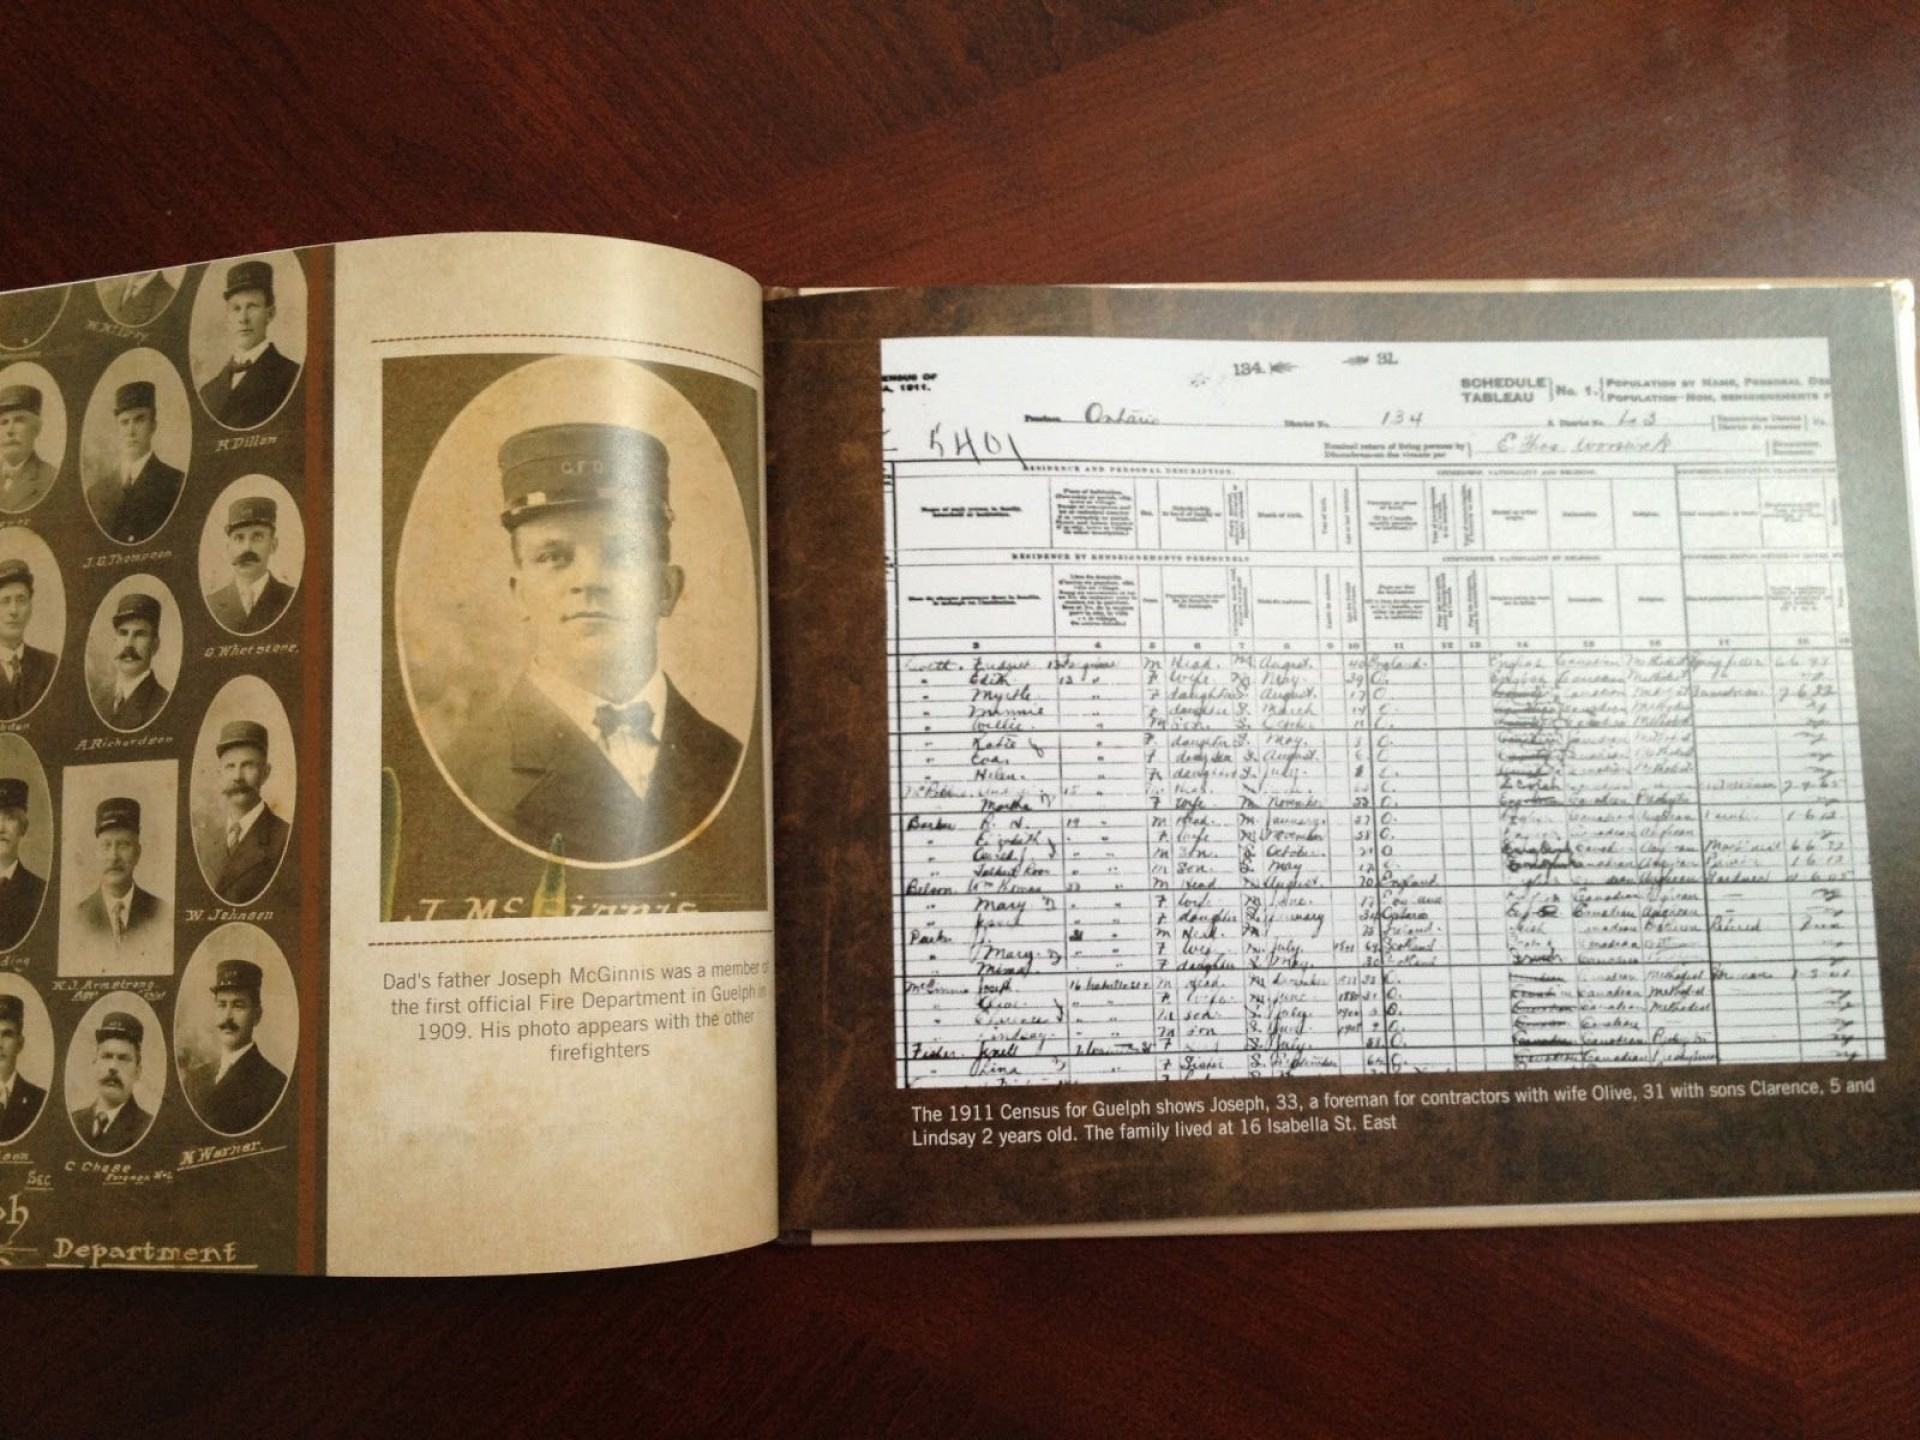 000 Staggering Family History Book Template Image  Sample Writing A1920